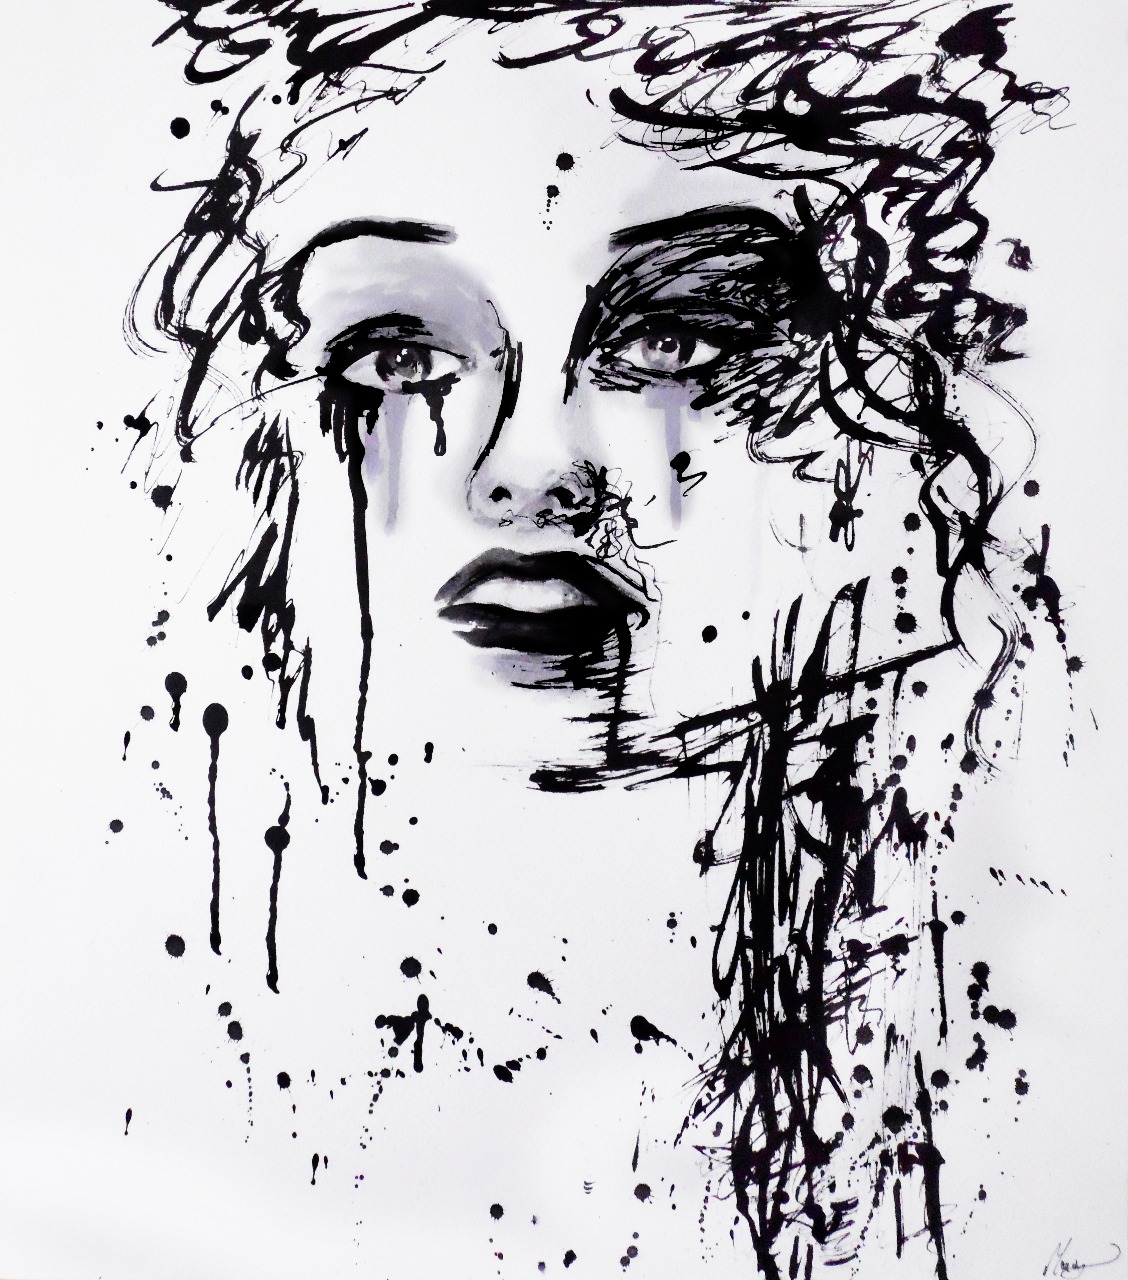 06-Andrea-Wéber-aka-Mandy-Candy-Paintings-A-Mirror-to-the-Artist-s-Emotions-www-designstack-co